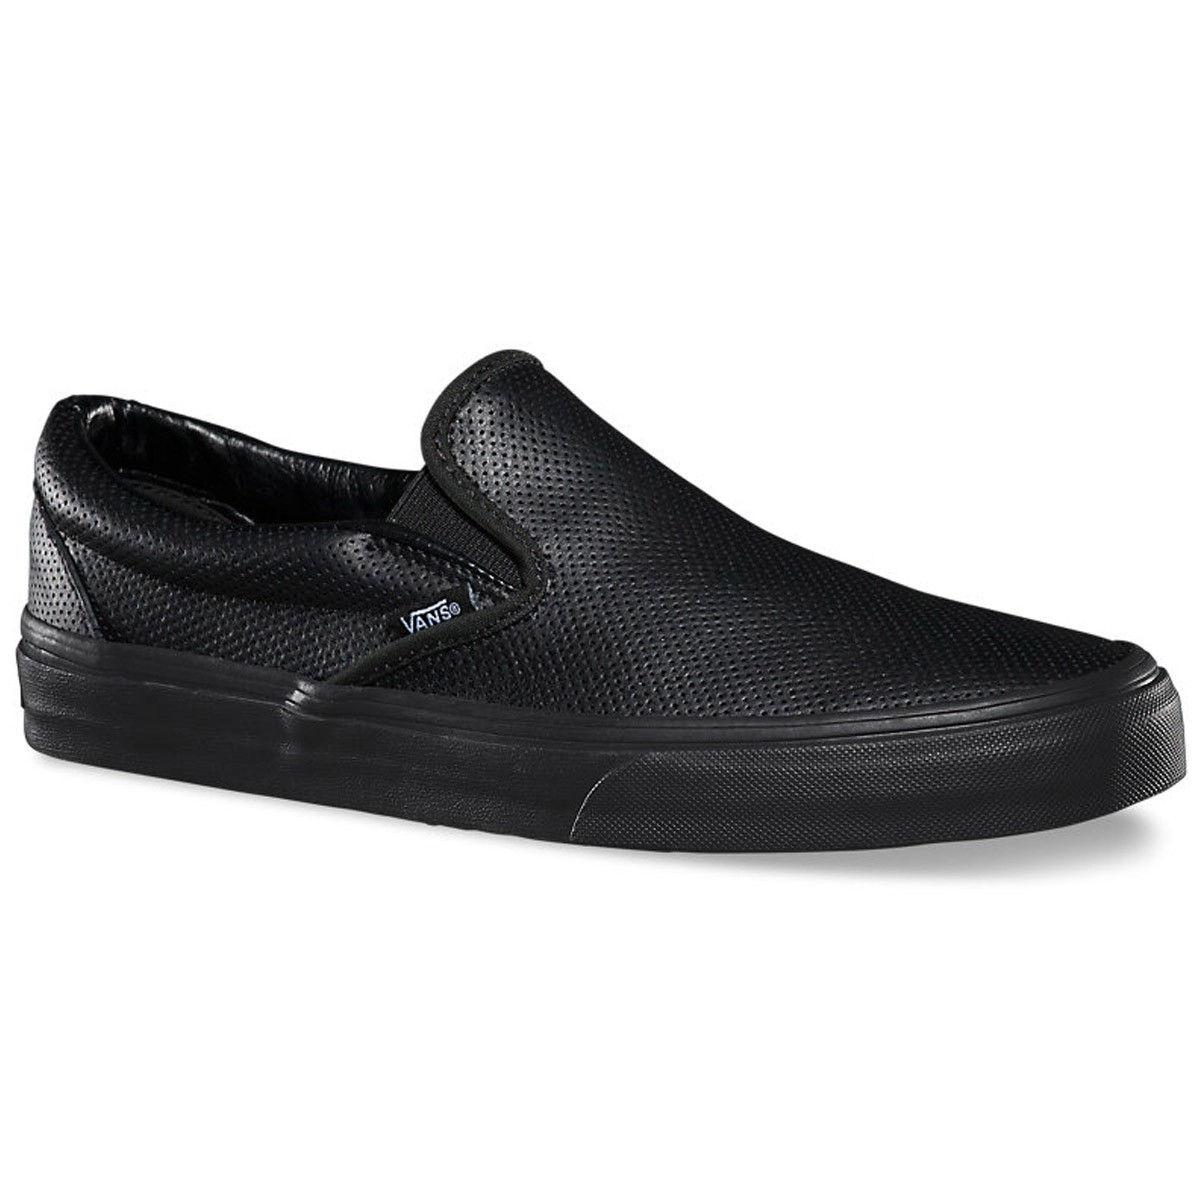 vans classic slip on shoes black